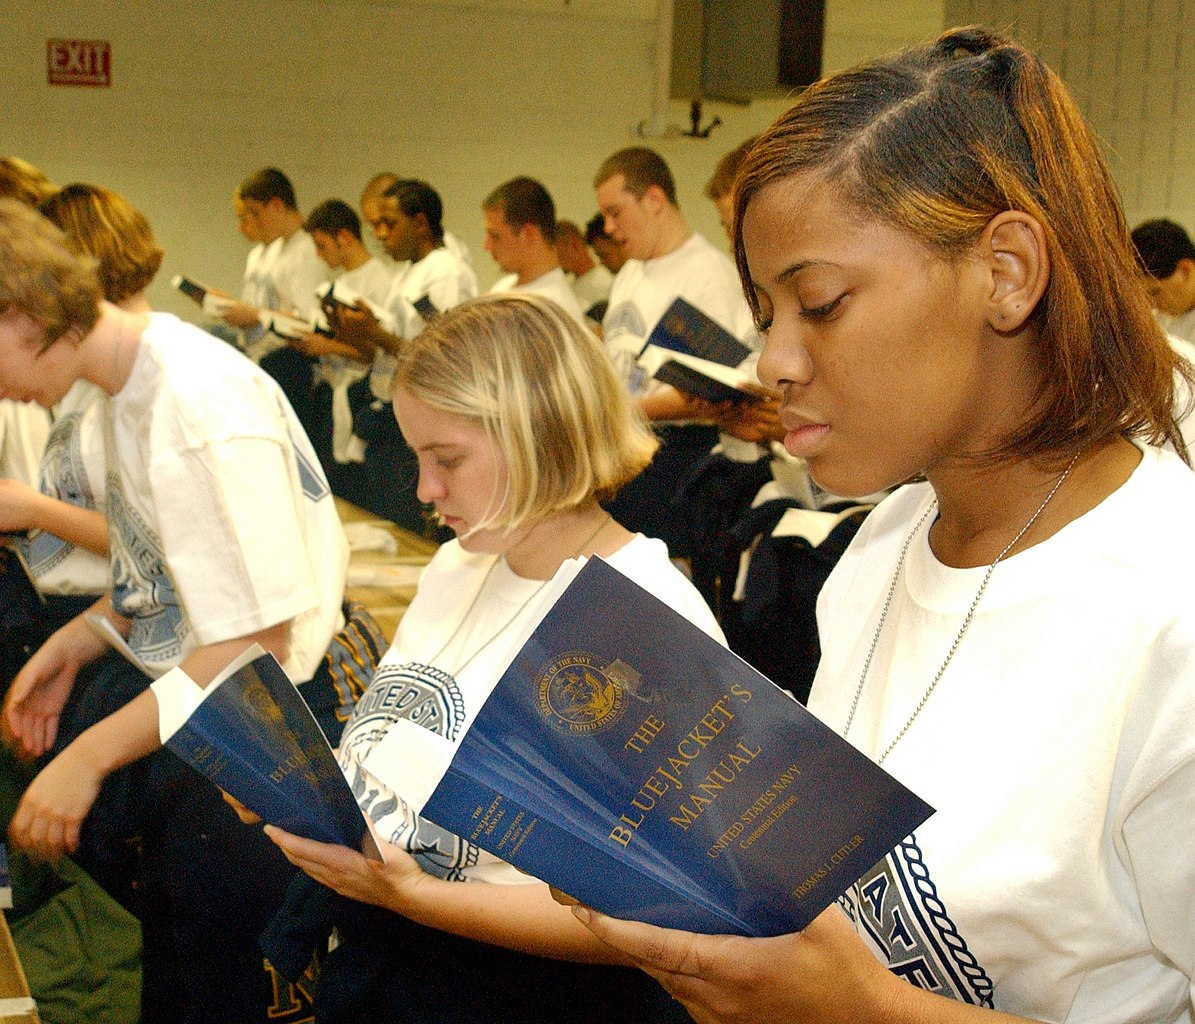 File:US Navy 021104-N-5576W-002 Recruits inventory and read a